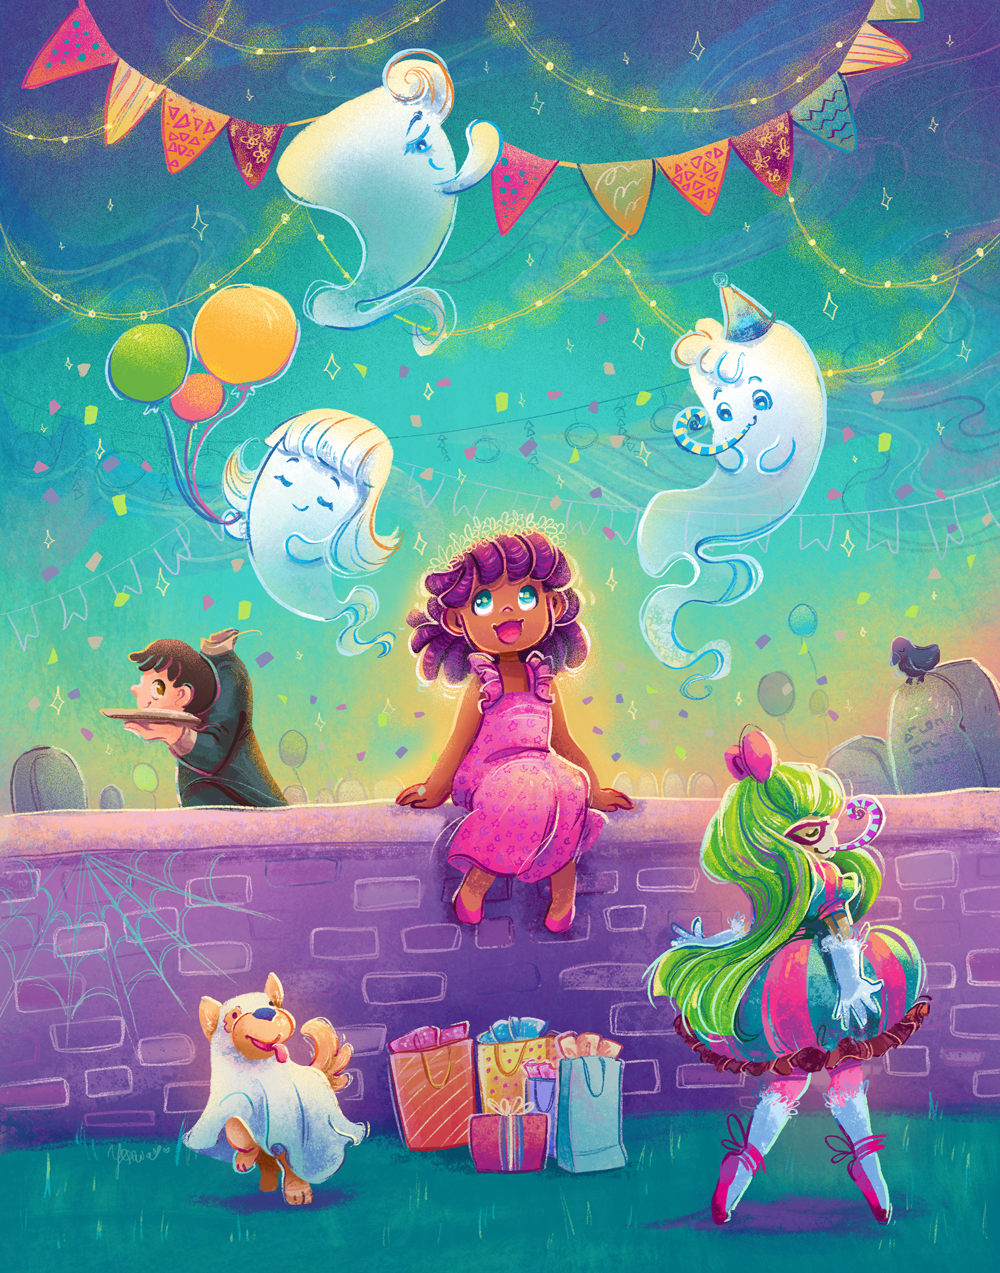 A young girl sitting on a brick wall and is looking up at two ghosts holding balloons